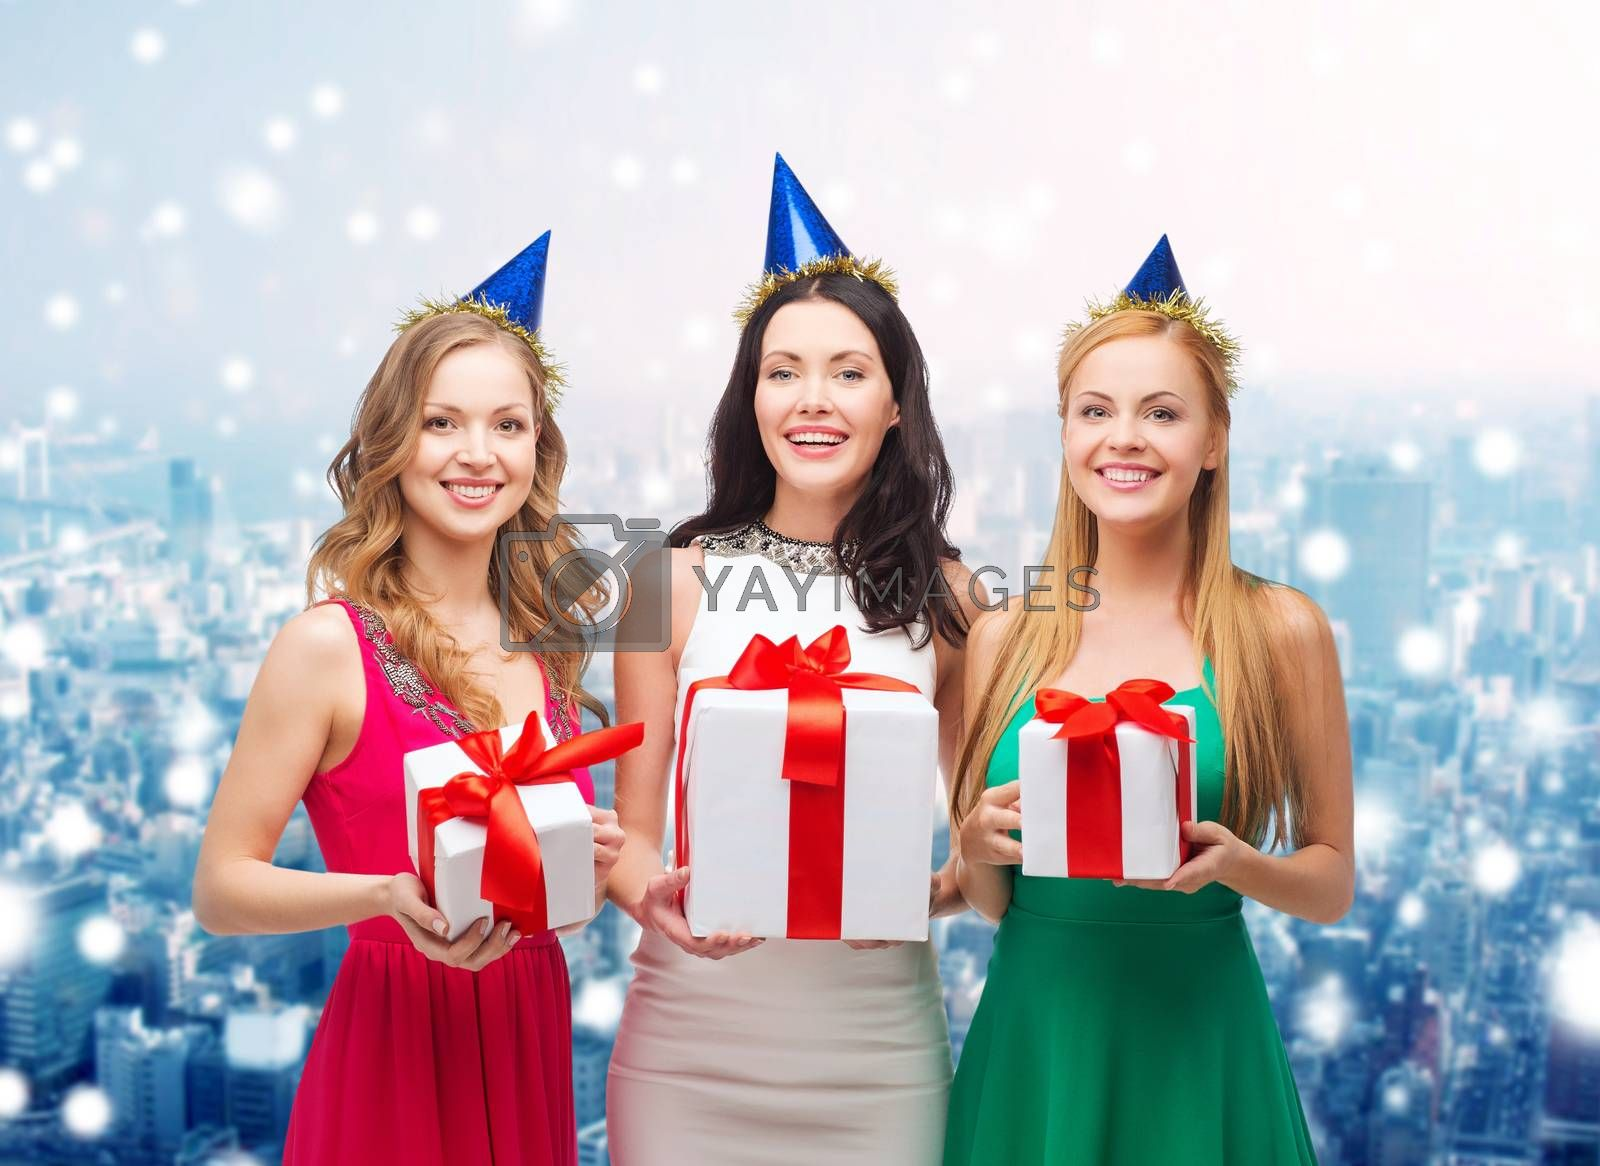 presents, holidays, people and celebration concept - smiling women in party caps with gift boxes over snowy city background